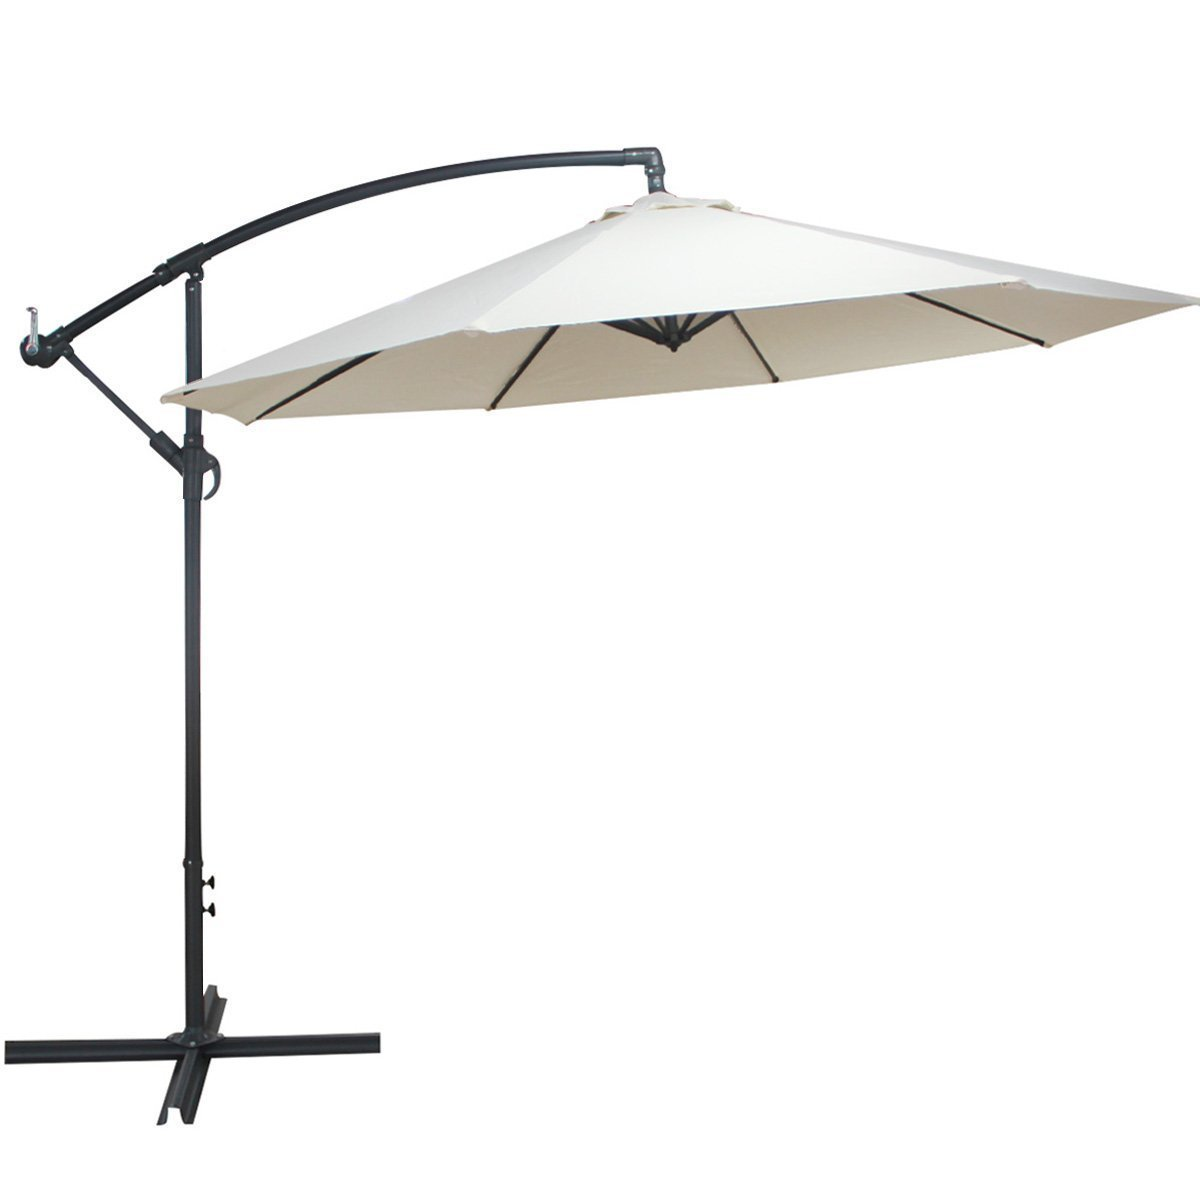 Outdoor 10 Ft Beach Umbrella UV Resistant Hanging Offset Patio Creamy White